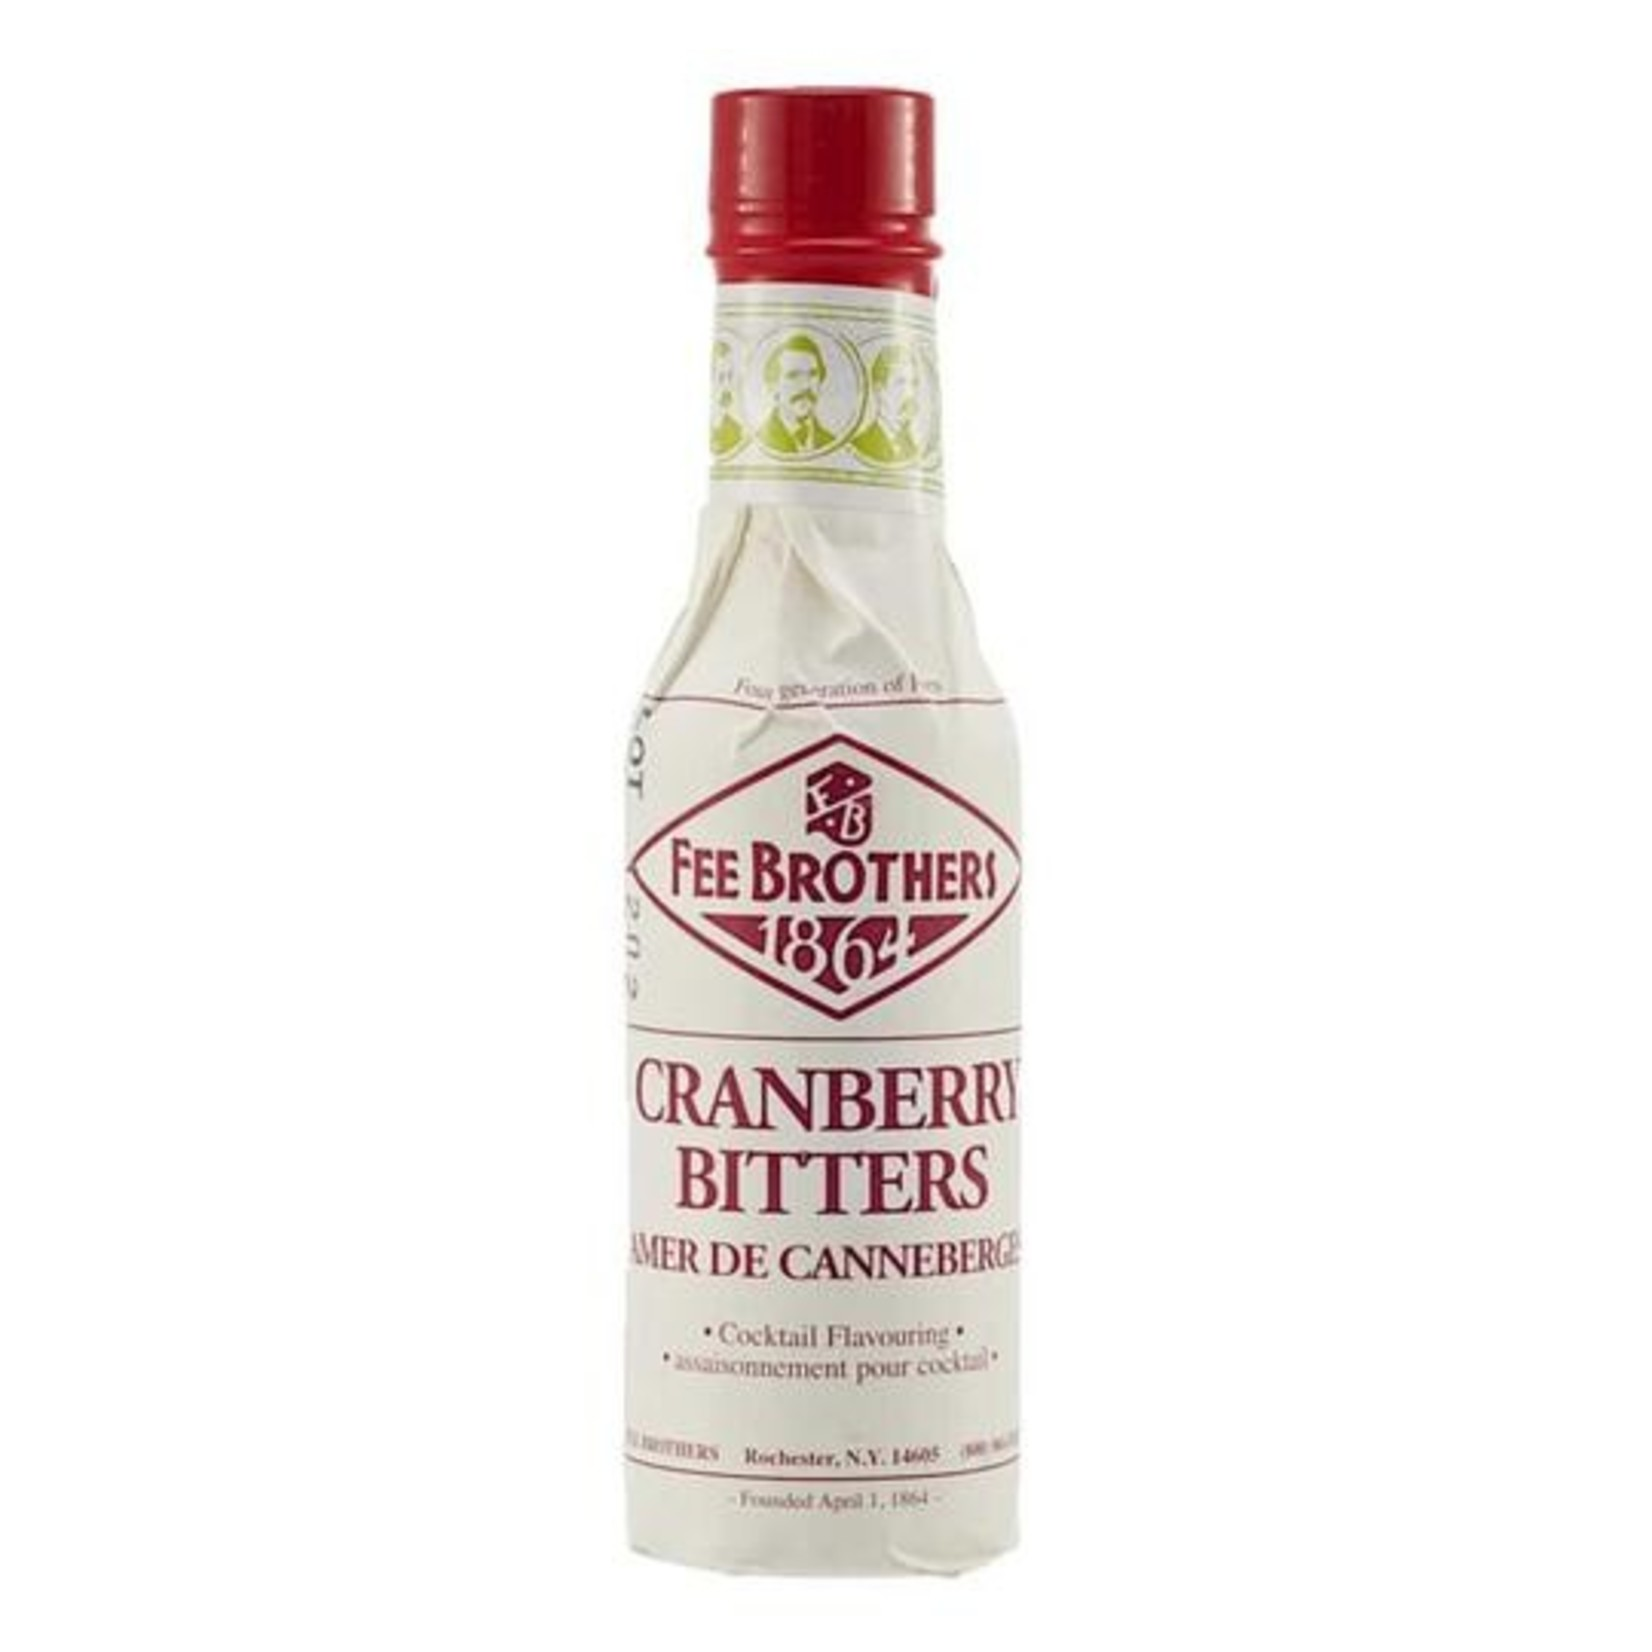 Fee Brothers Fee Brothers Bitters Cranberry